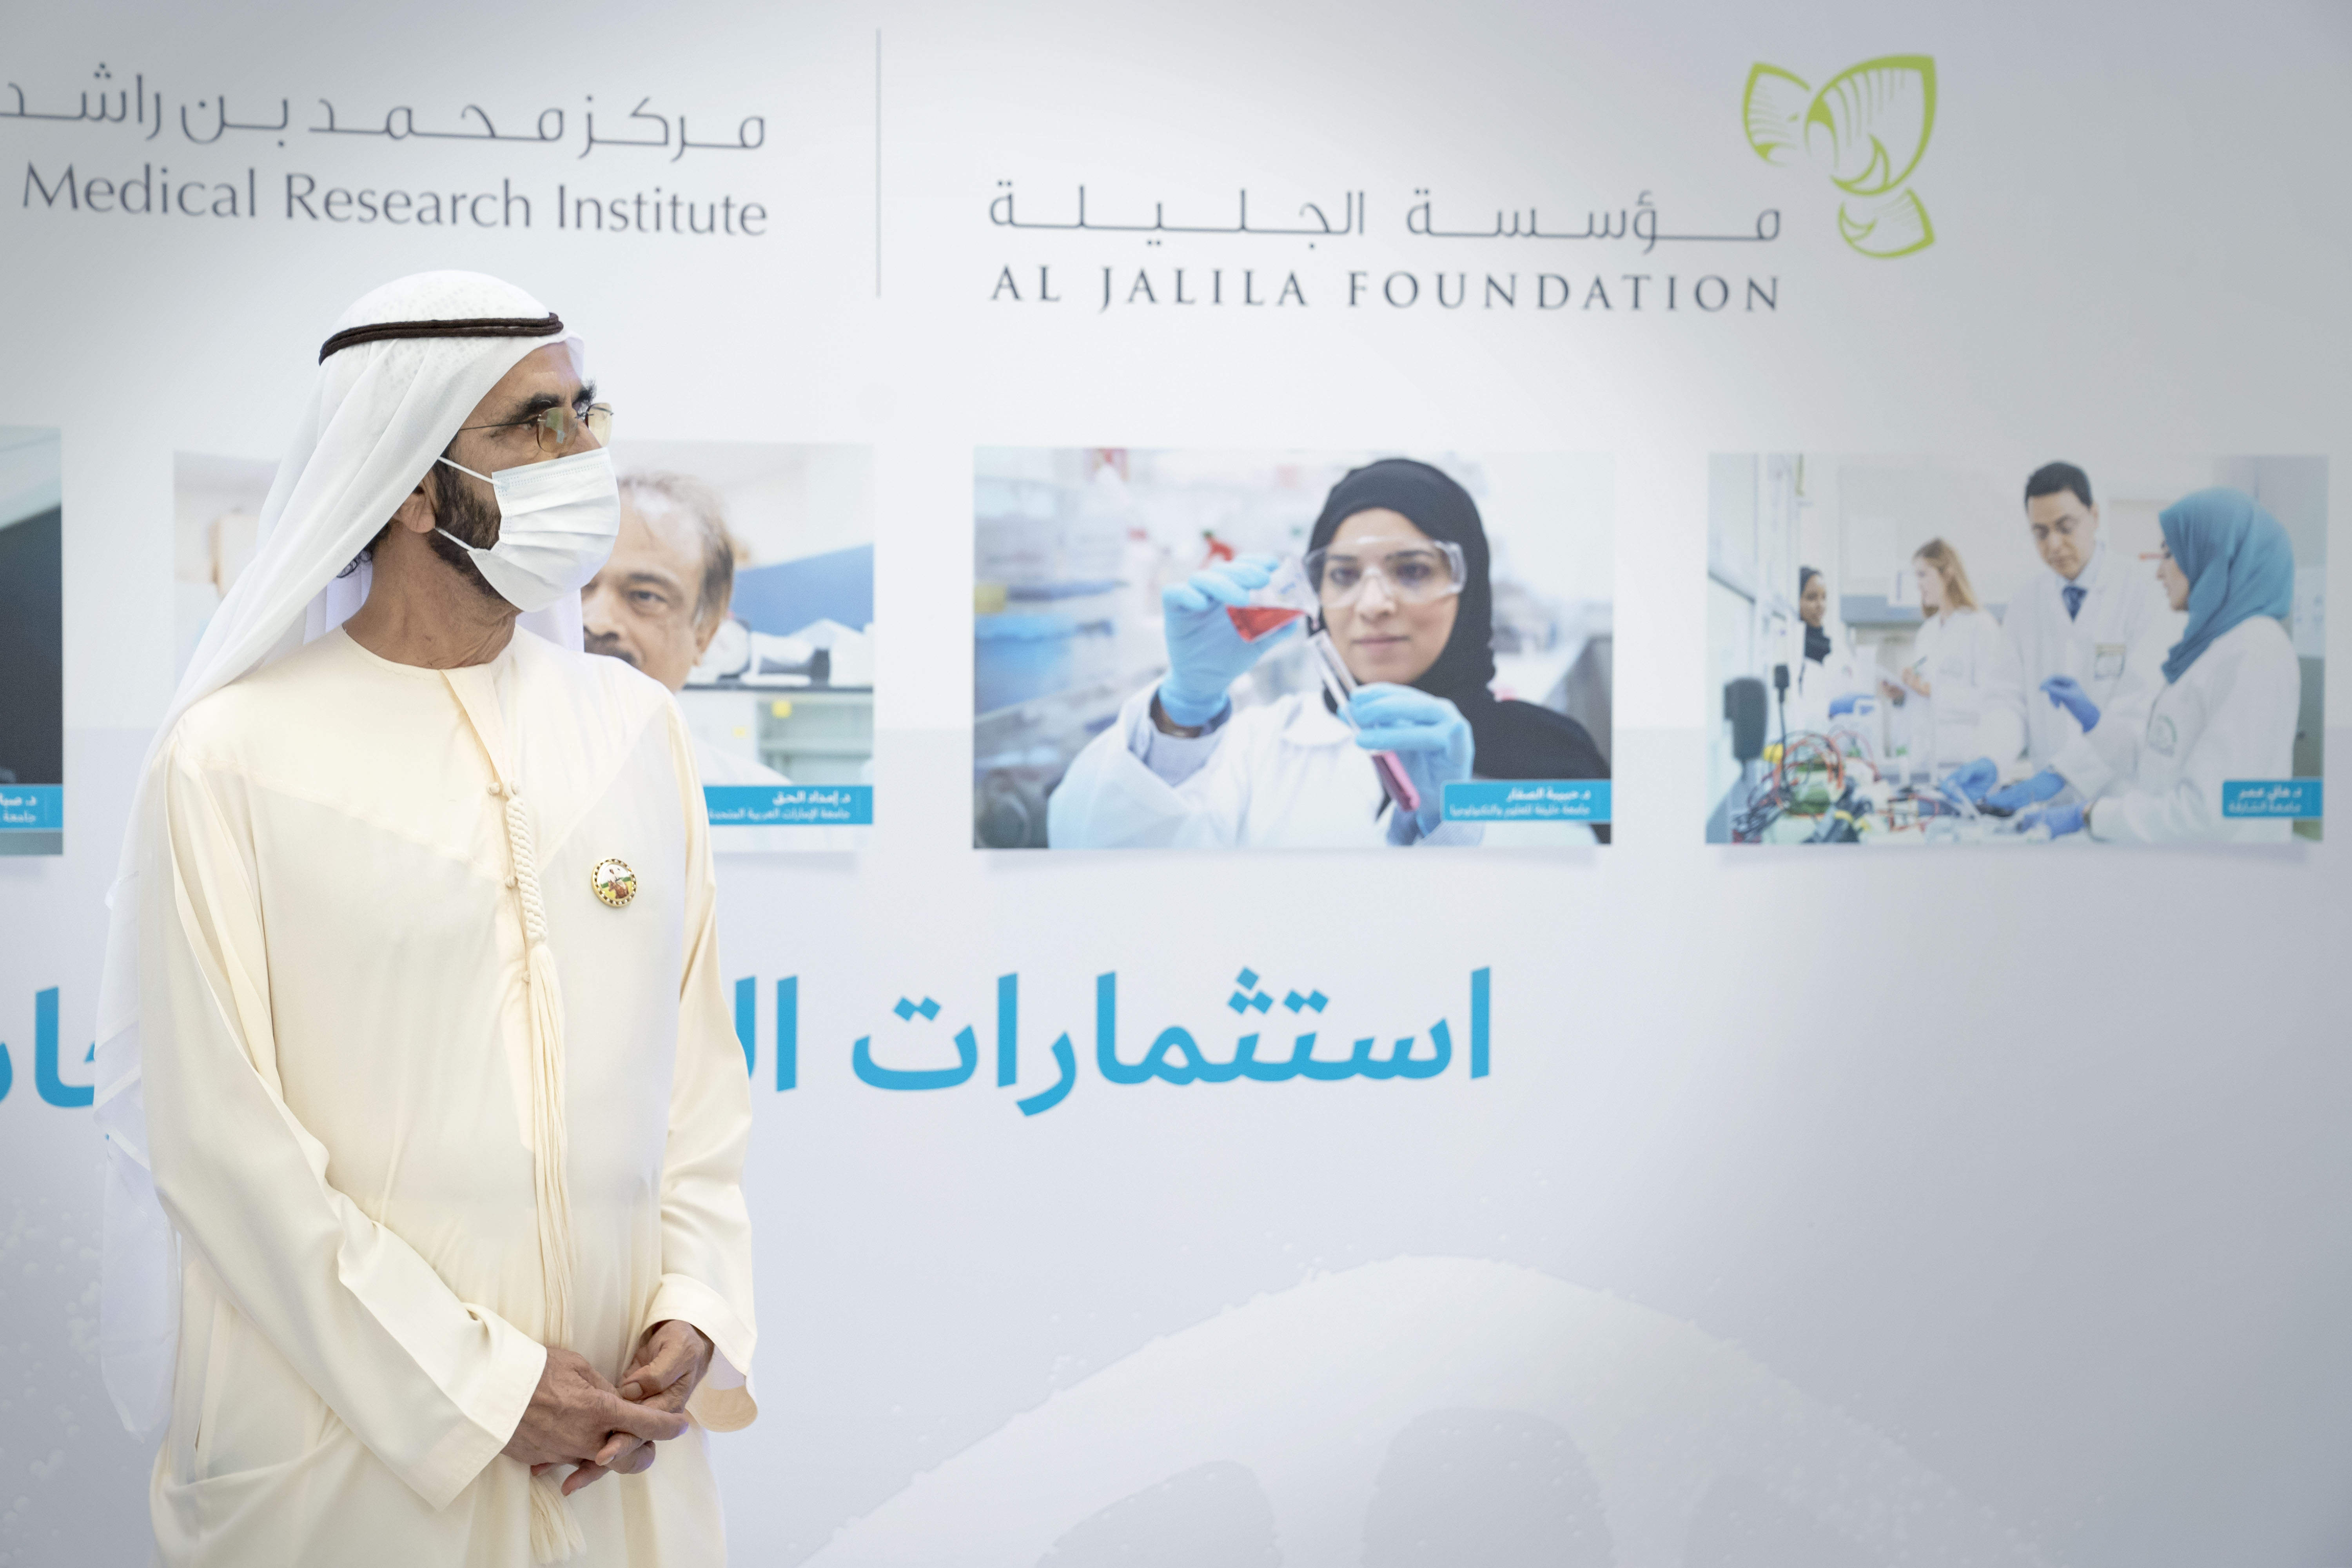 Sheikh Mohammed launches the Mohammed Bin Rashid Medical Research Institute an initiative of Al Jalila Foundation